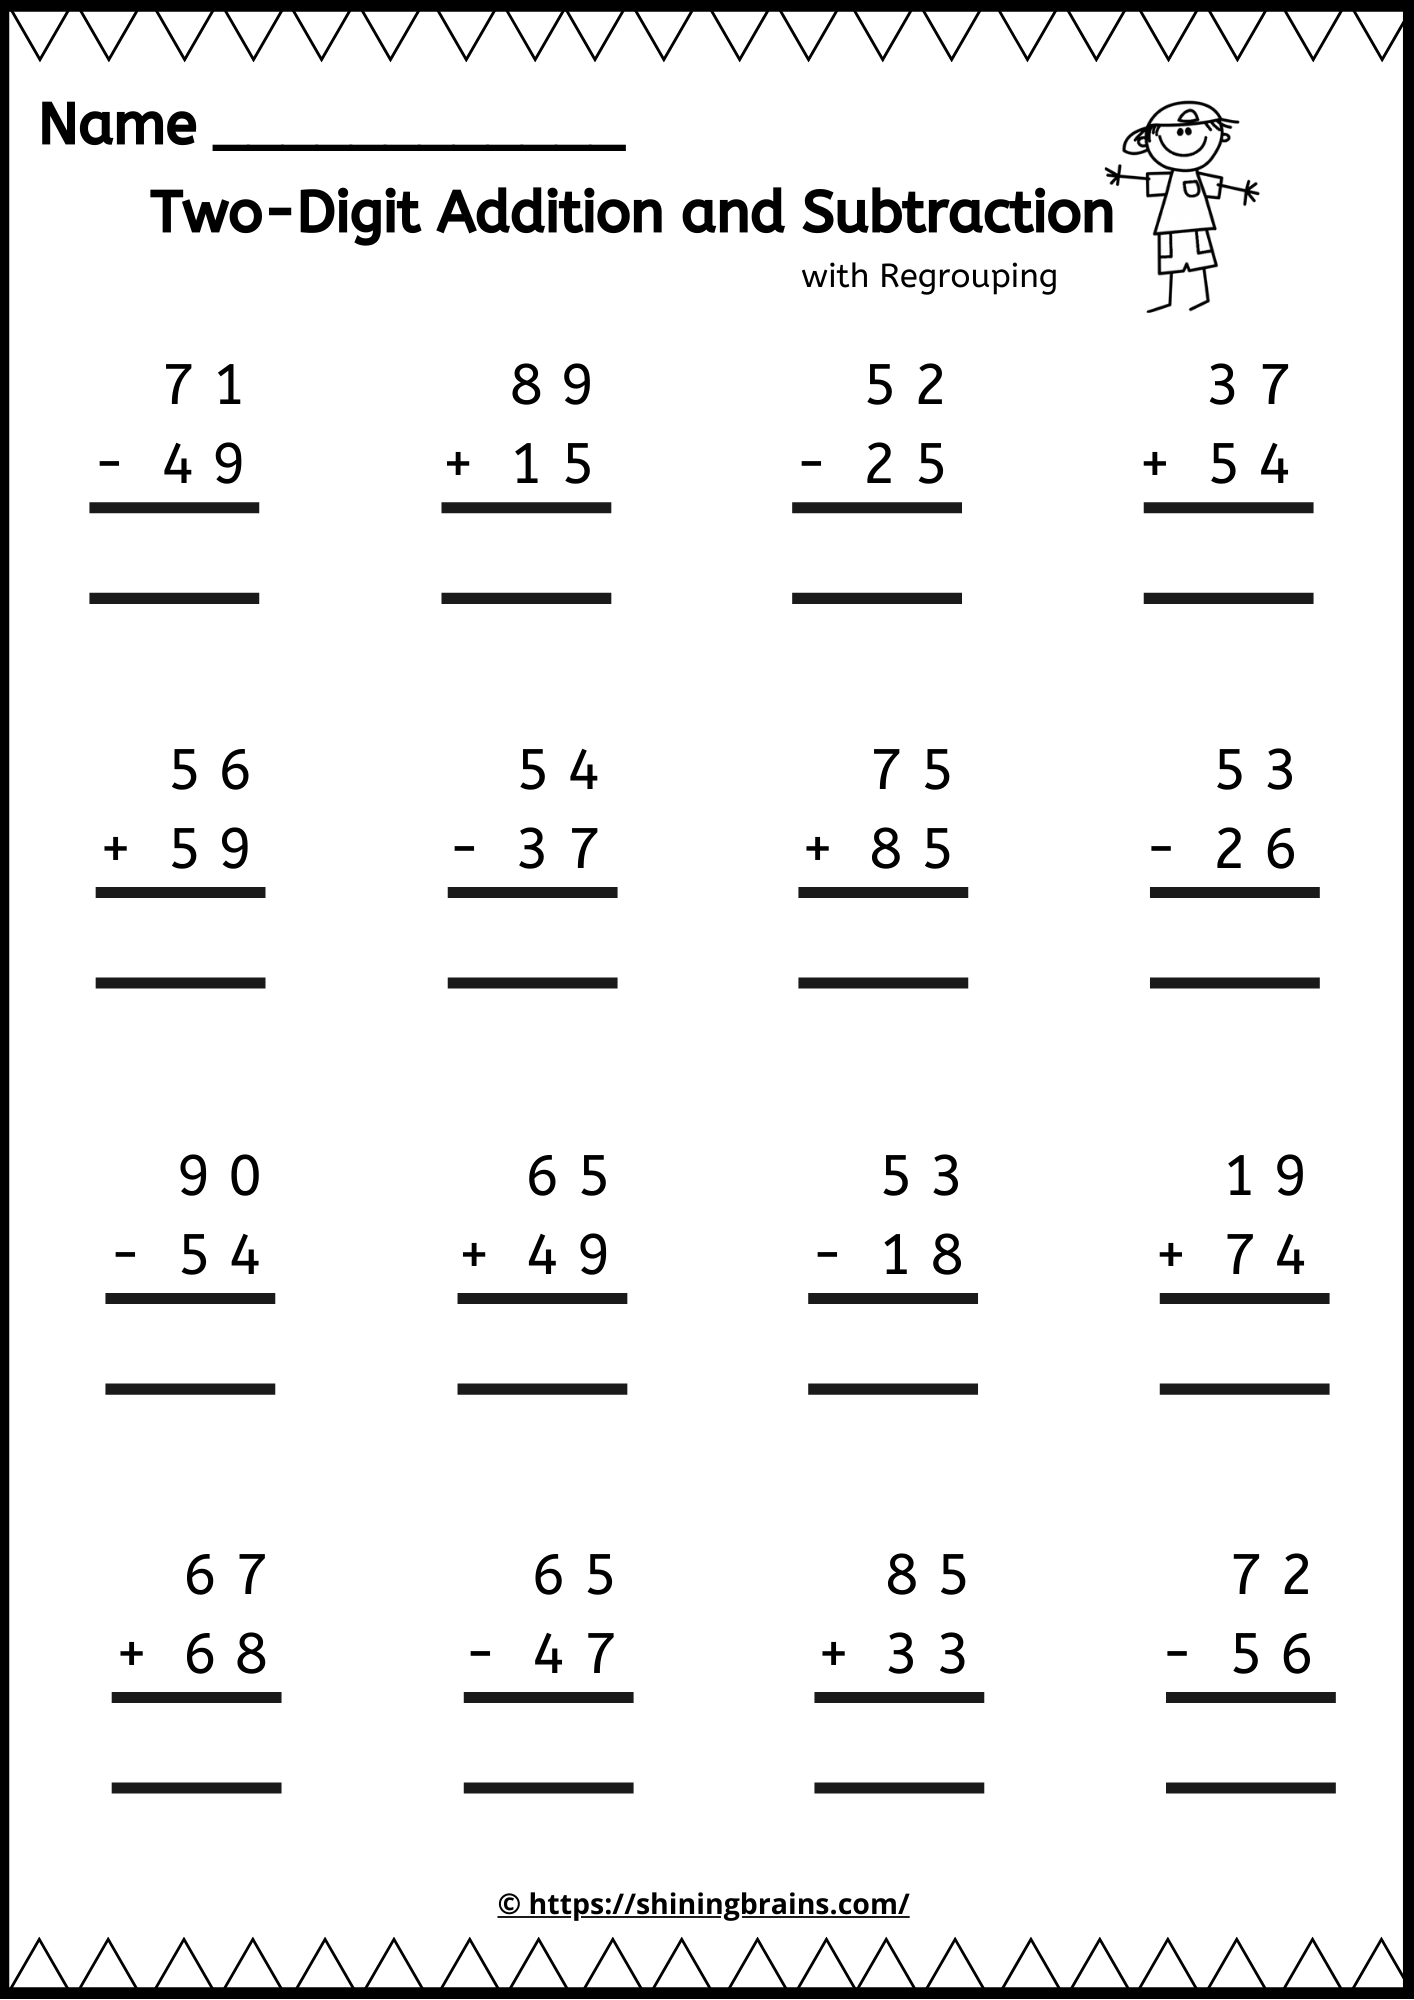 Two Digit Addition And Subtraction With Regrouping Addition And Subtraction Worksheets Subtraction Worksheets Worksheets [ 2000 x 1414 Pixel ]